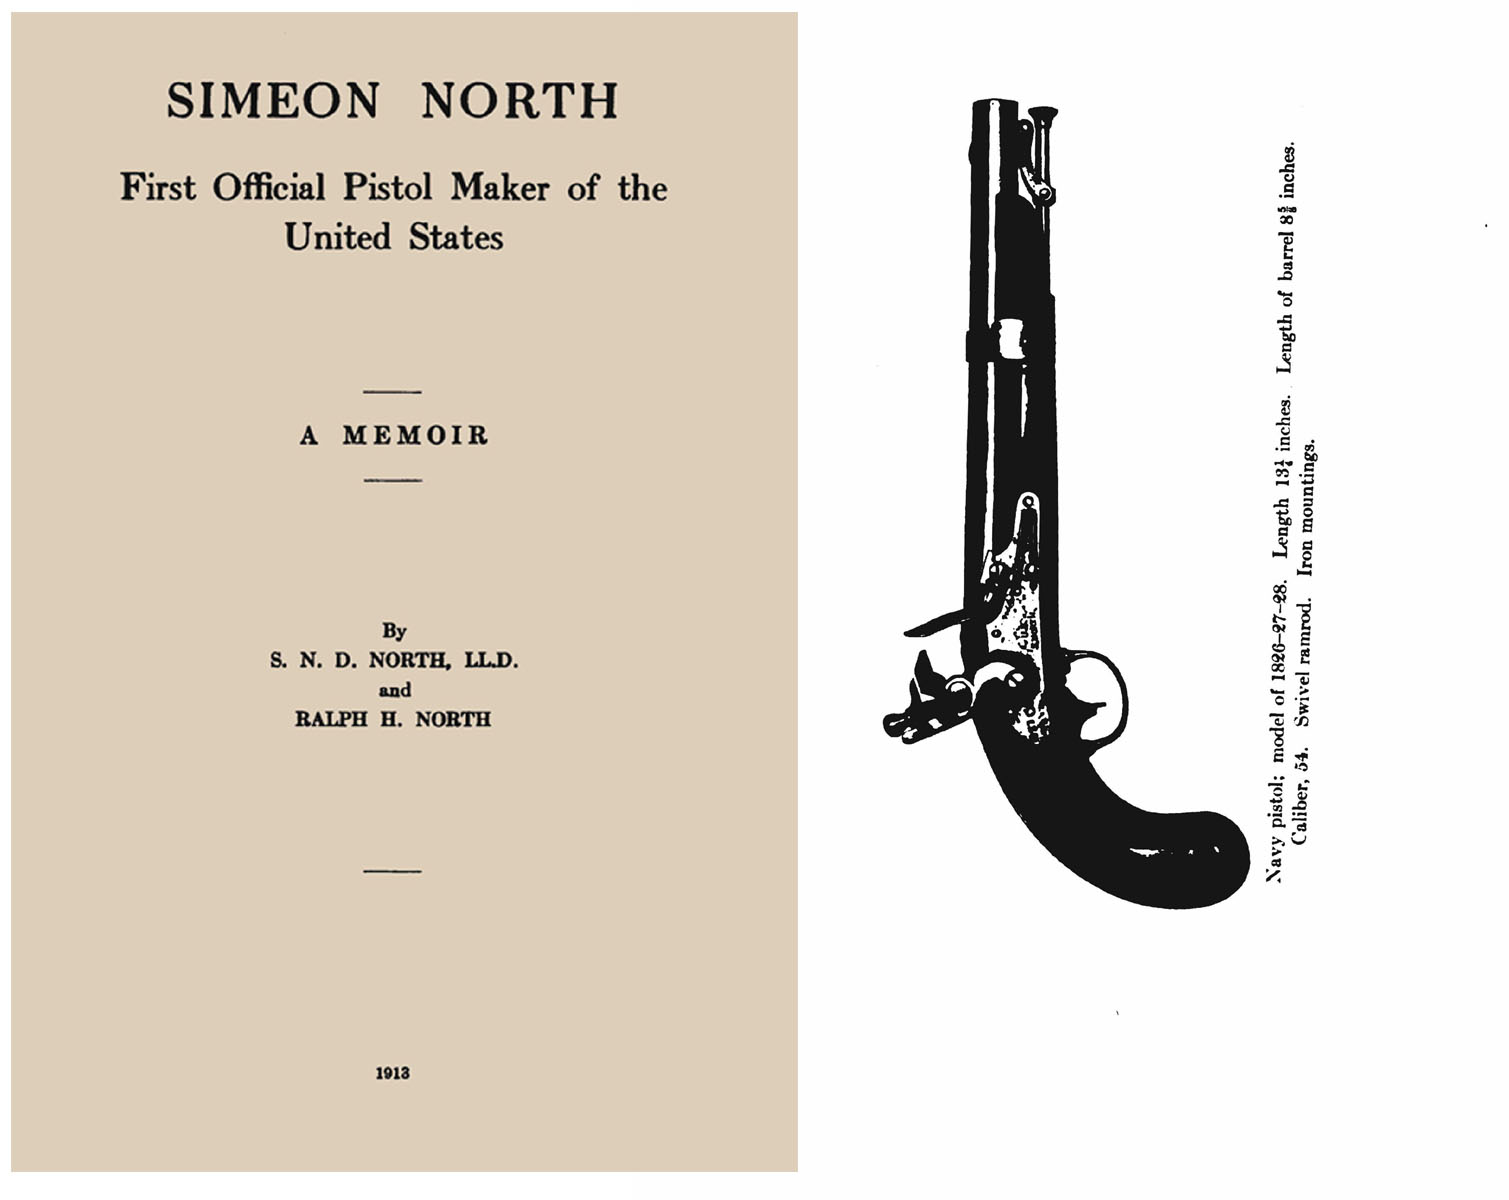 Simeon North- The First Official Pistol Maker to the U.S 1913